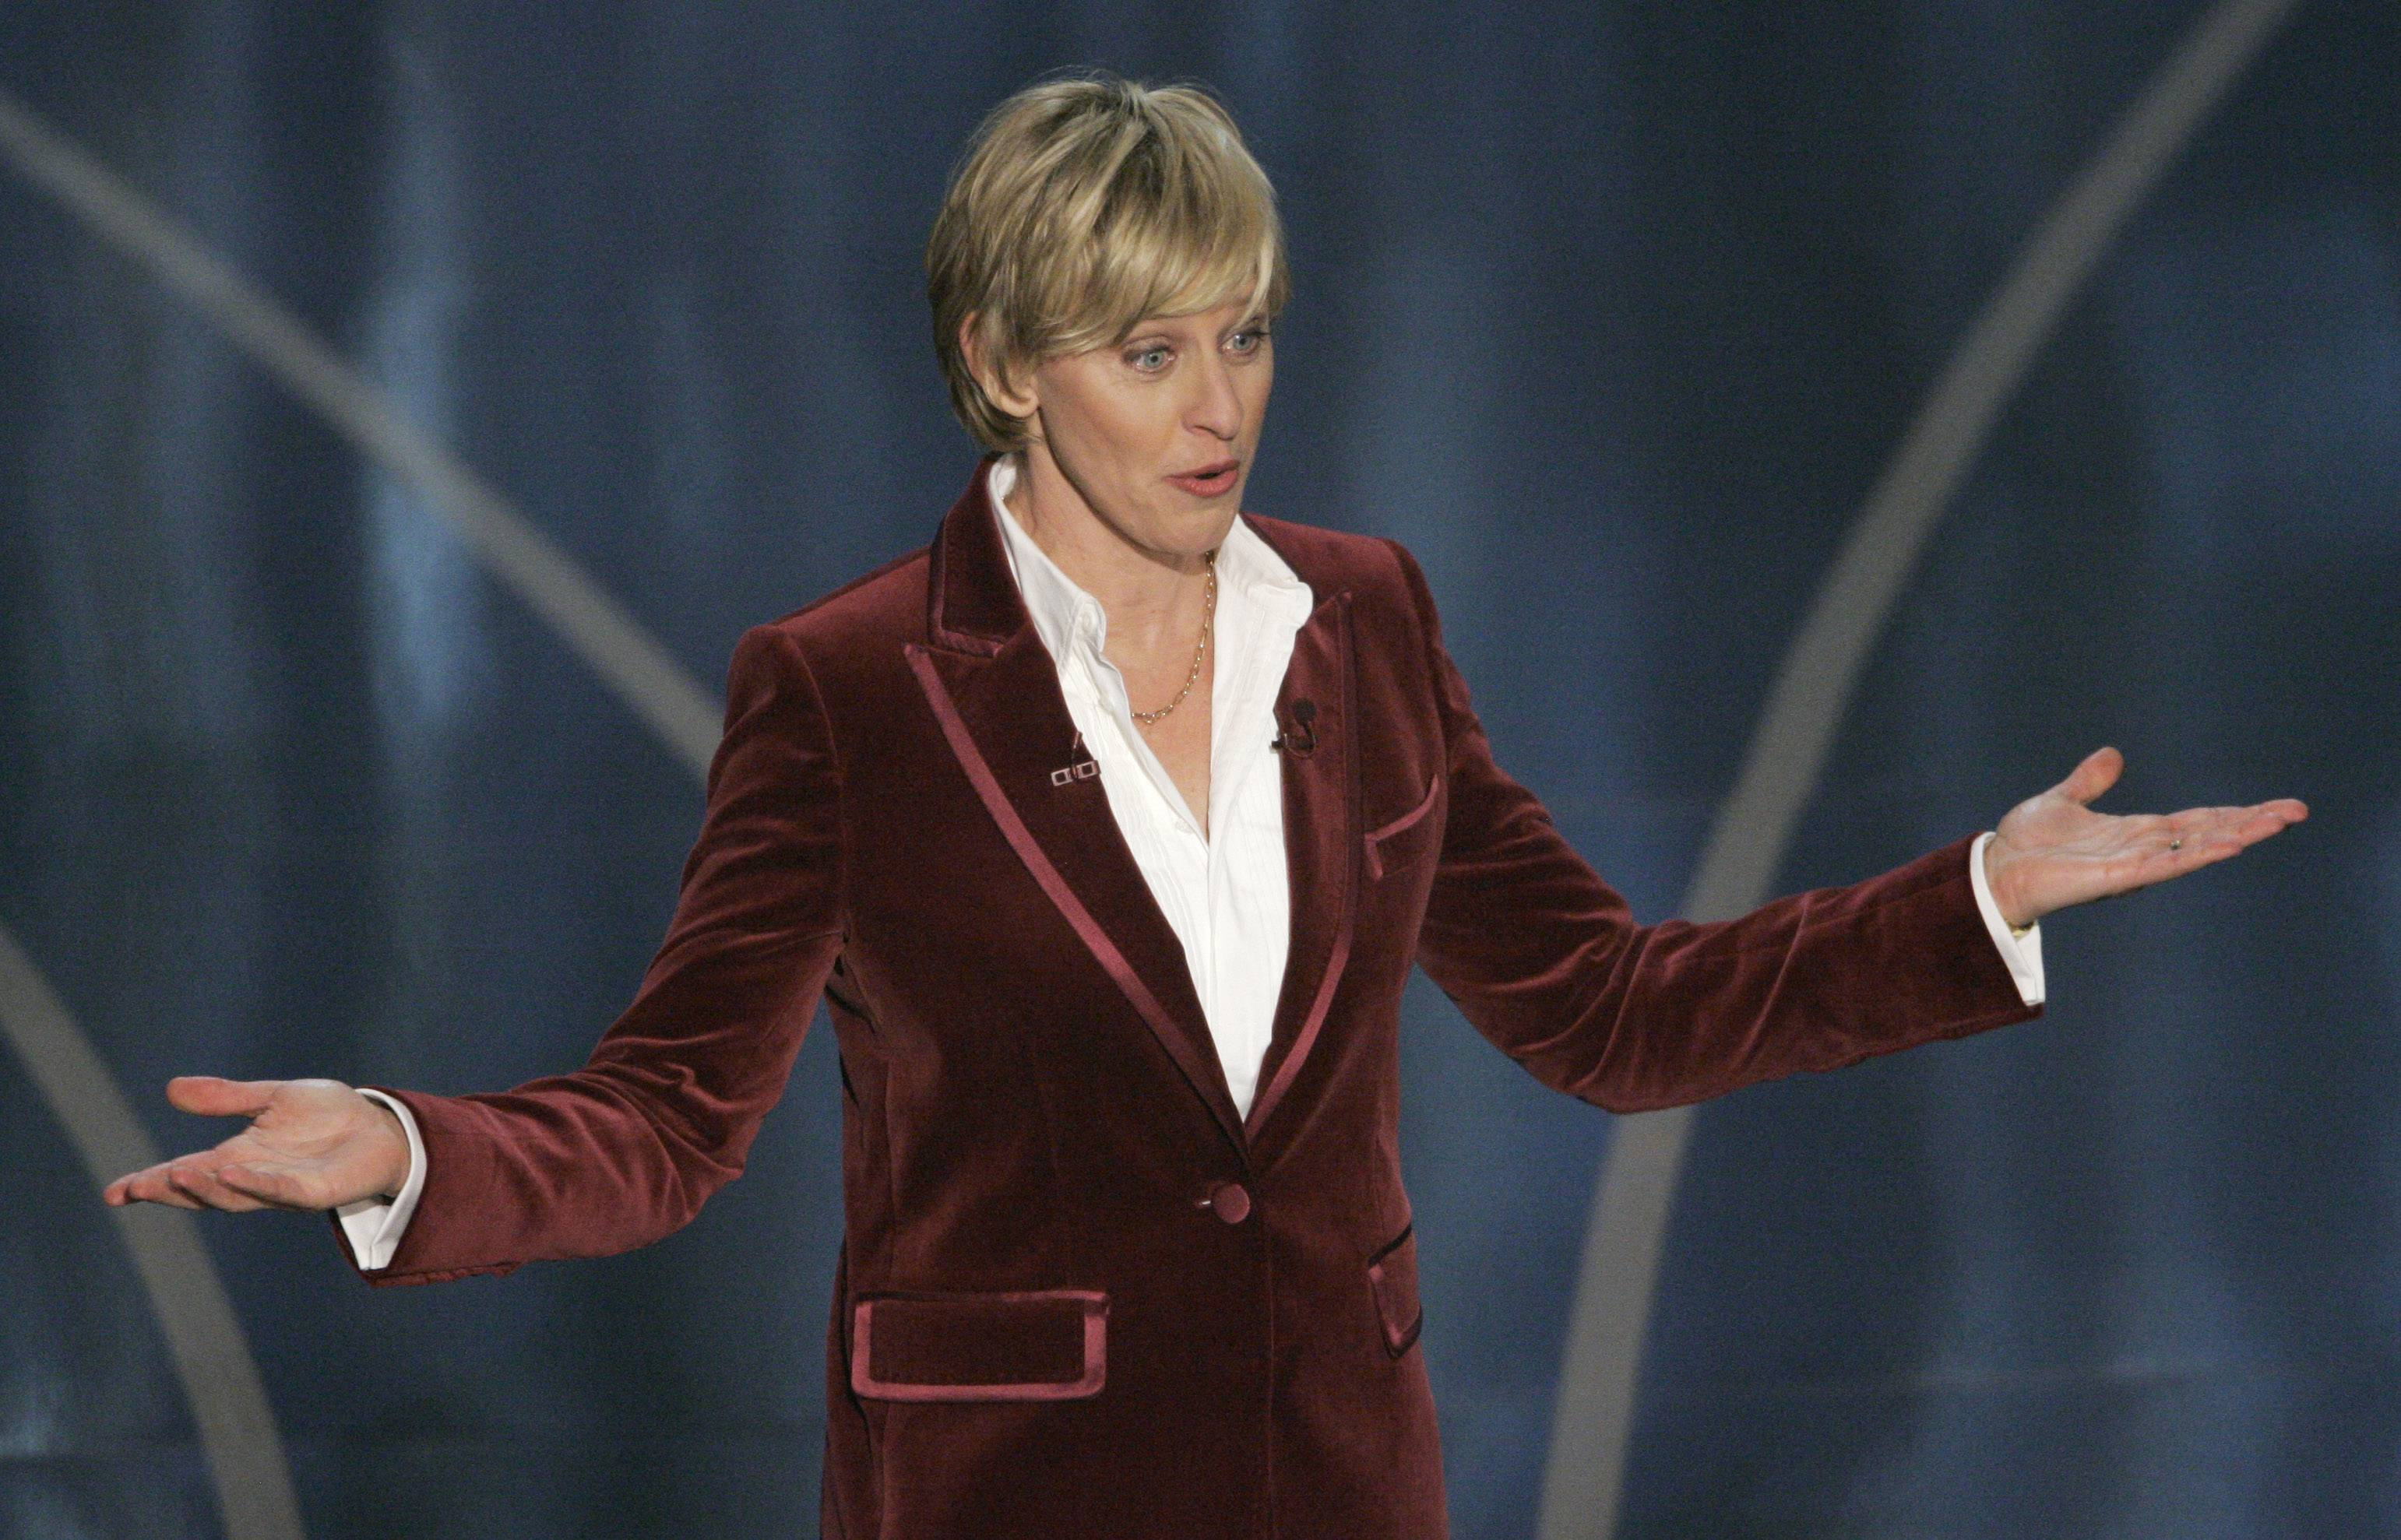 Ellen DeGeneres is returning as host at the 86th Academy Awards on March 2, after making her Oscar debut in 2007. She's had a close hand in the writing process, Neil Meron said.